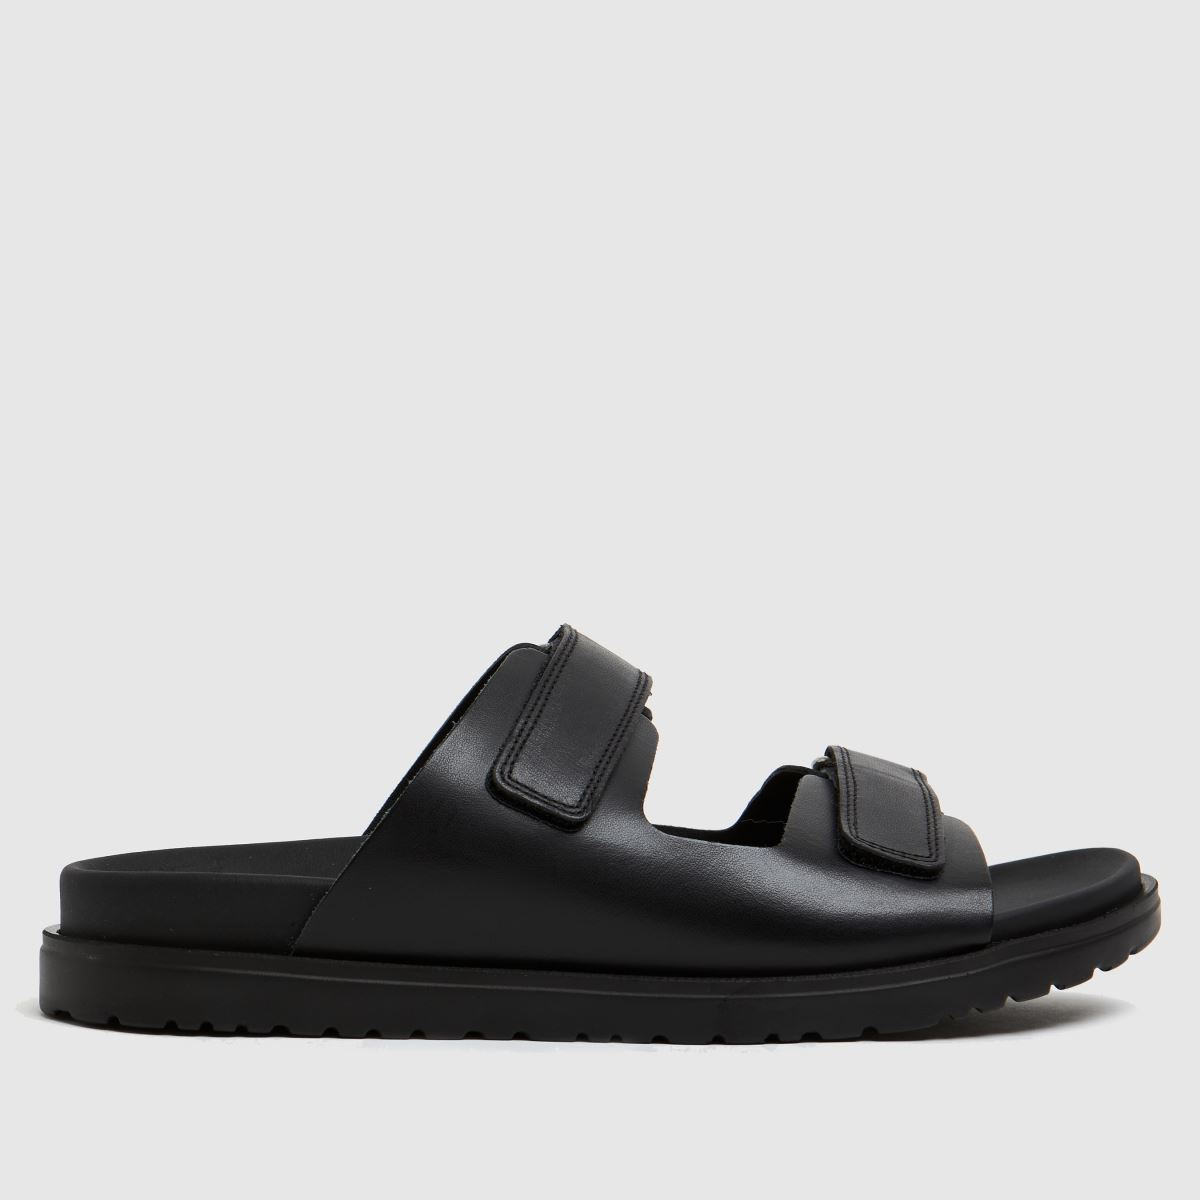 The Edit By Schuh Black Pearl Leather Band Sandals